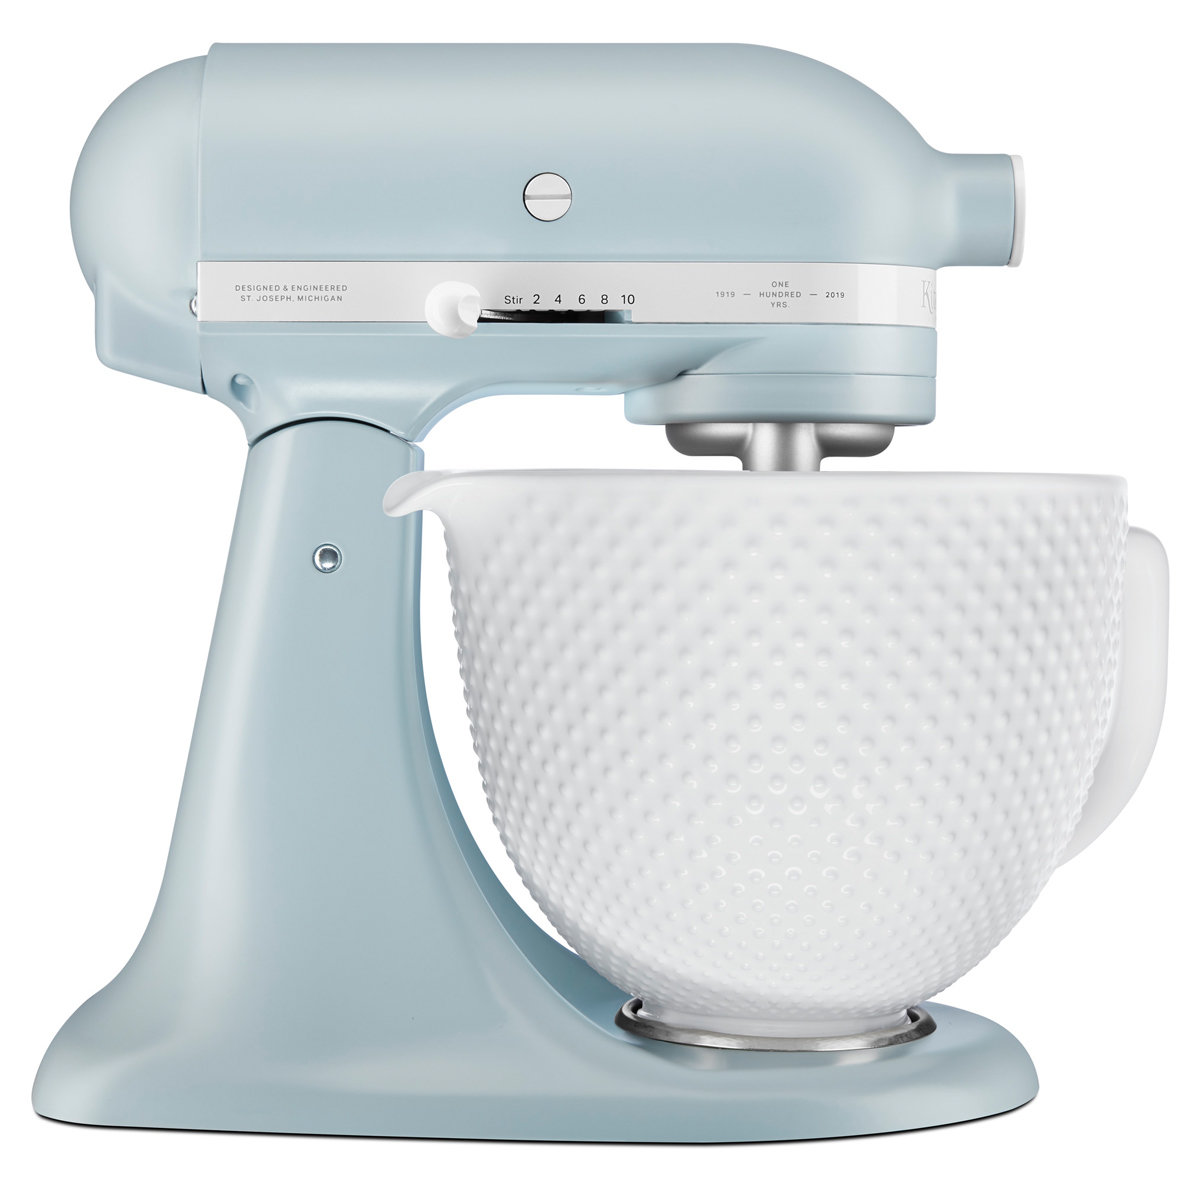 Details About New Kitchenaid 5ksm180rcamb 100 Years Misty Blue Retro Stand Mixer